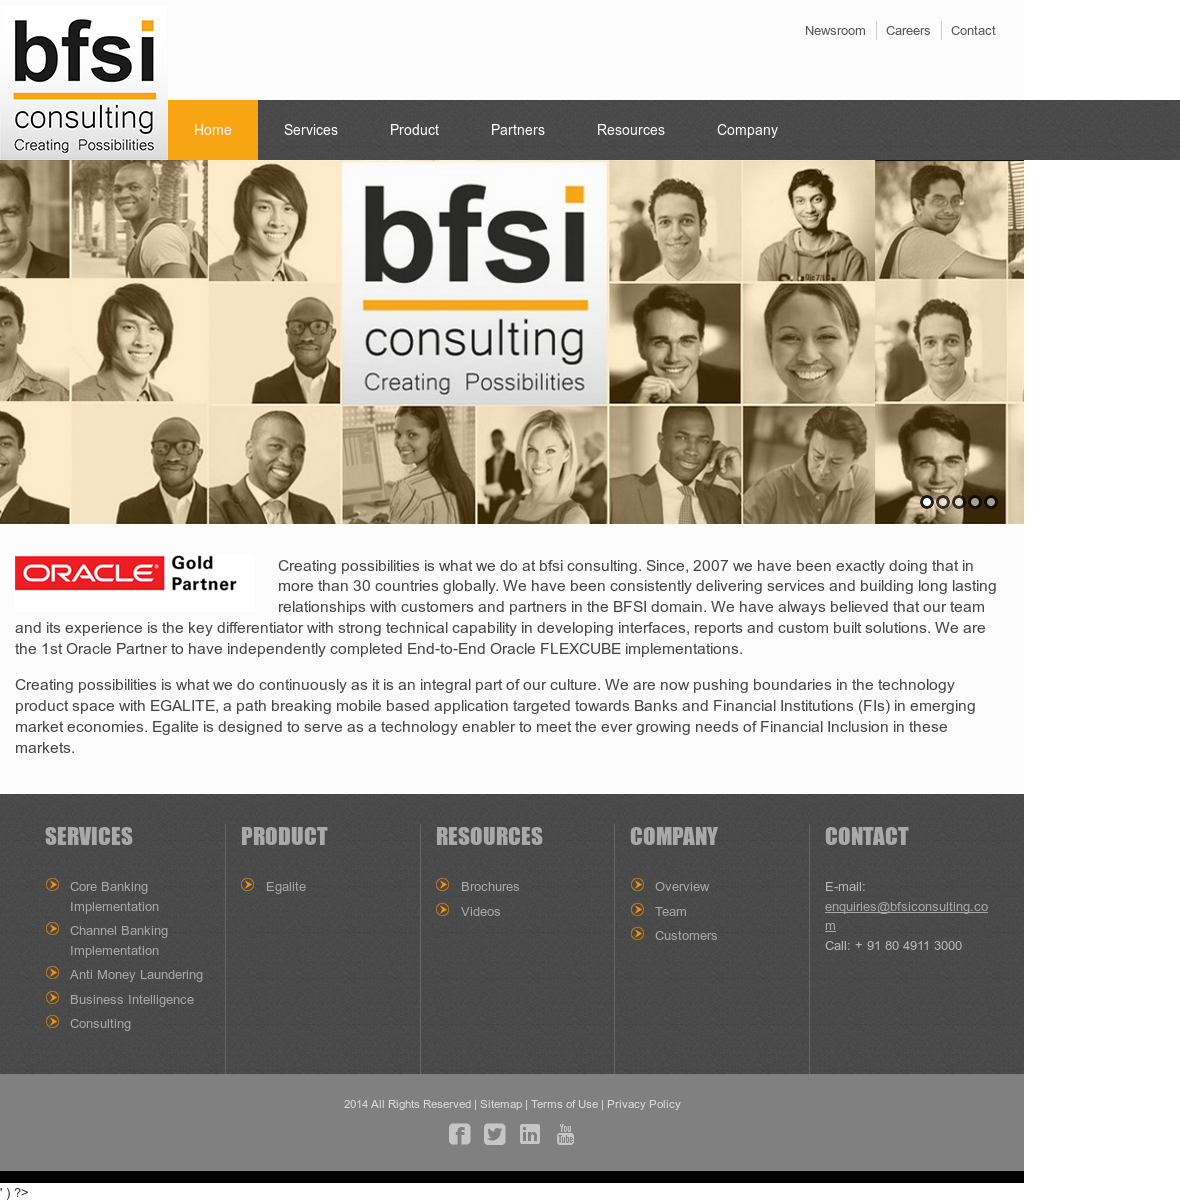 Bfsi Software Consulting Competitors, Revenue and Employees - Owler